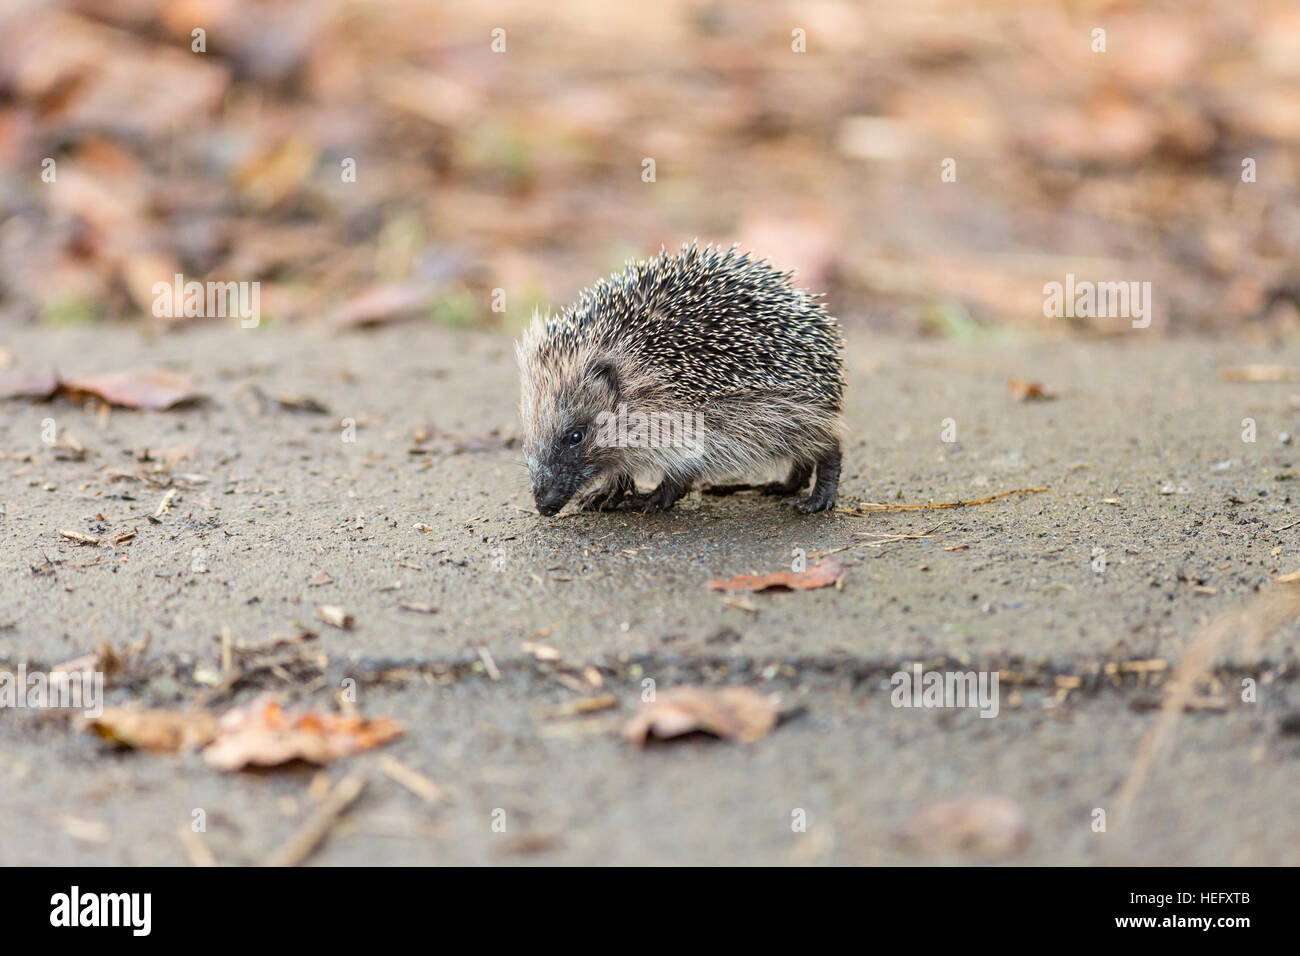 juvenile hedgehog - Stock Image